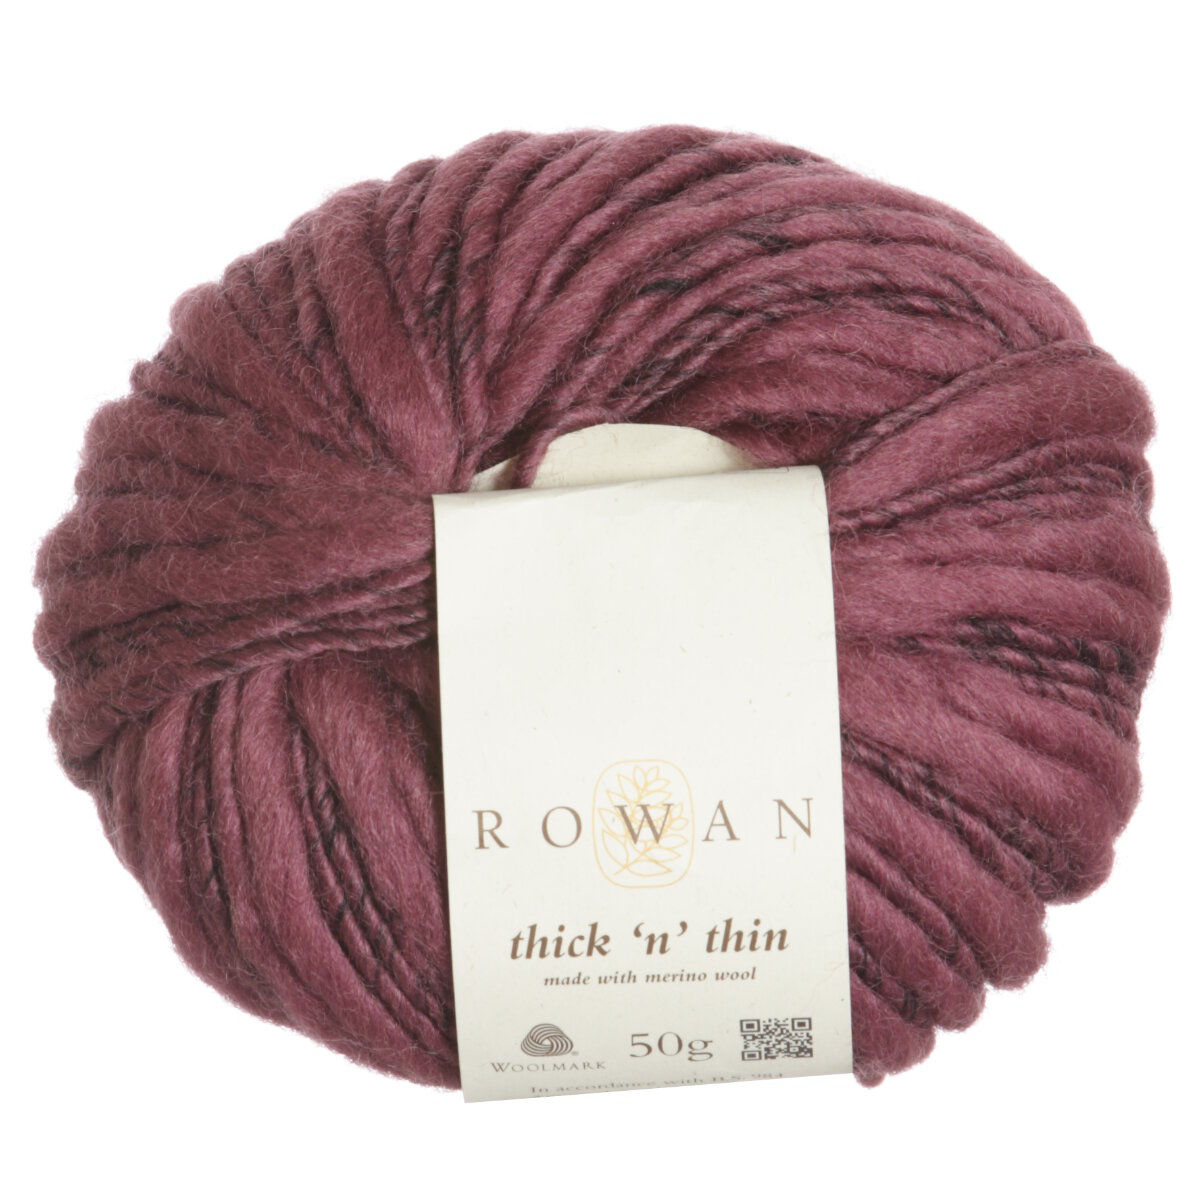 Knitting Patterns For Thin Yarn : Rowan Thick n Thin Yarn at Jimmy Beans Wool